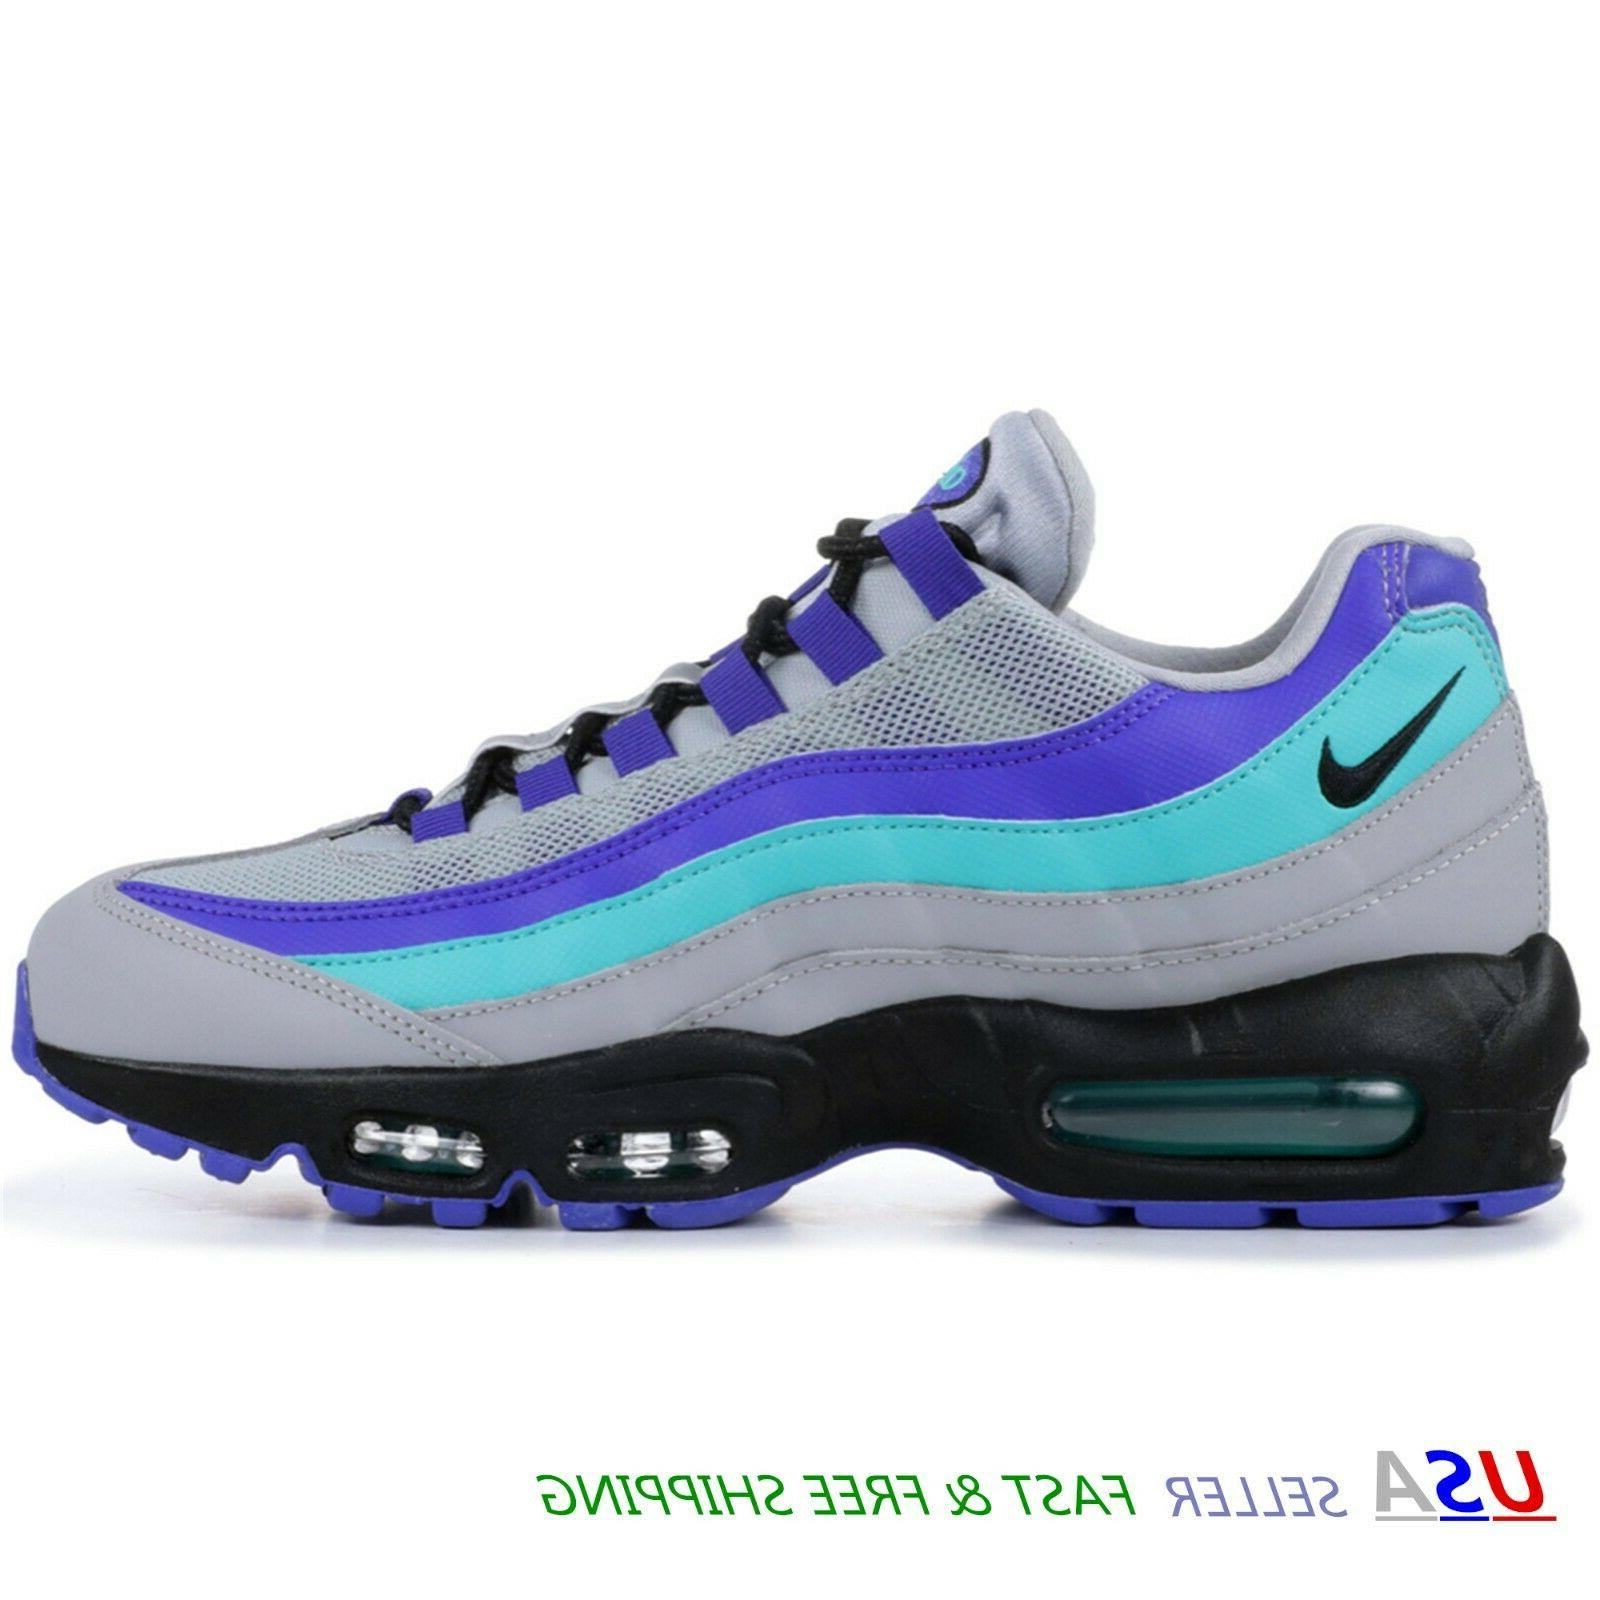 the latest 60cb1 22194 NIKE AIR MAX 95 Boy's Kids Sneakers Shoes 1.5Y WOLF GREY INDIGO BURST  905461 023